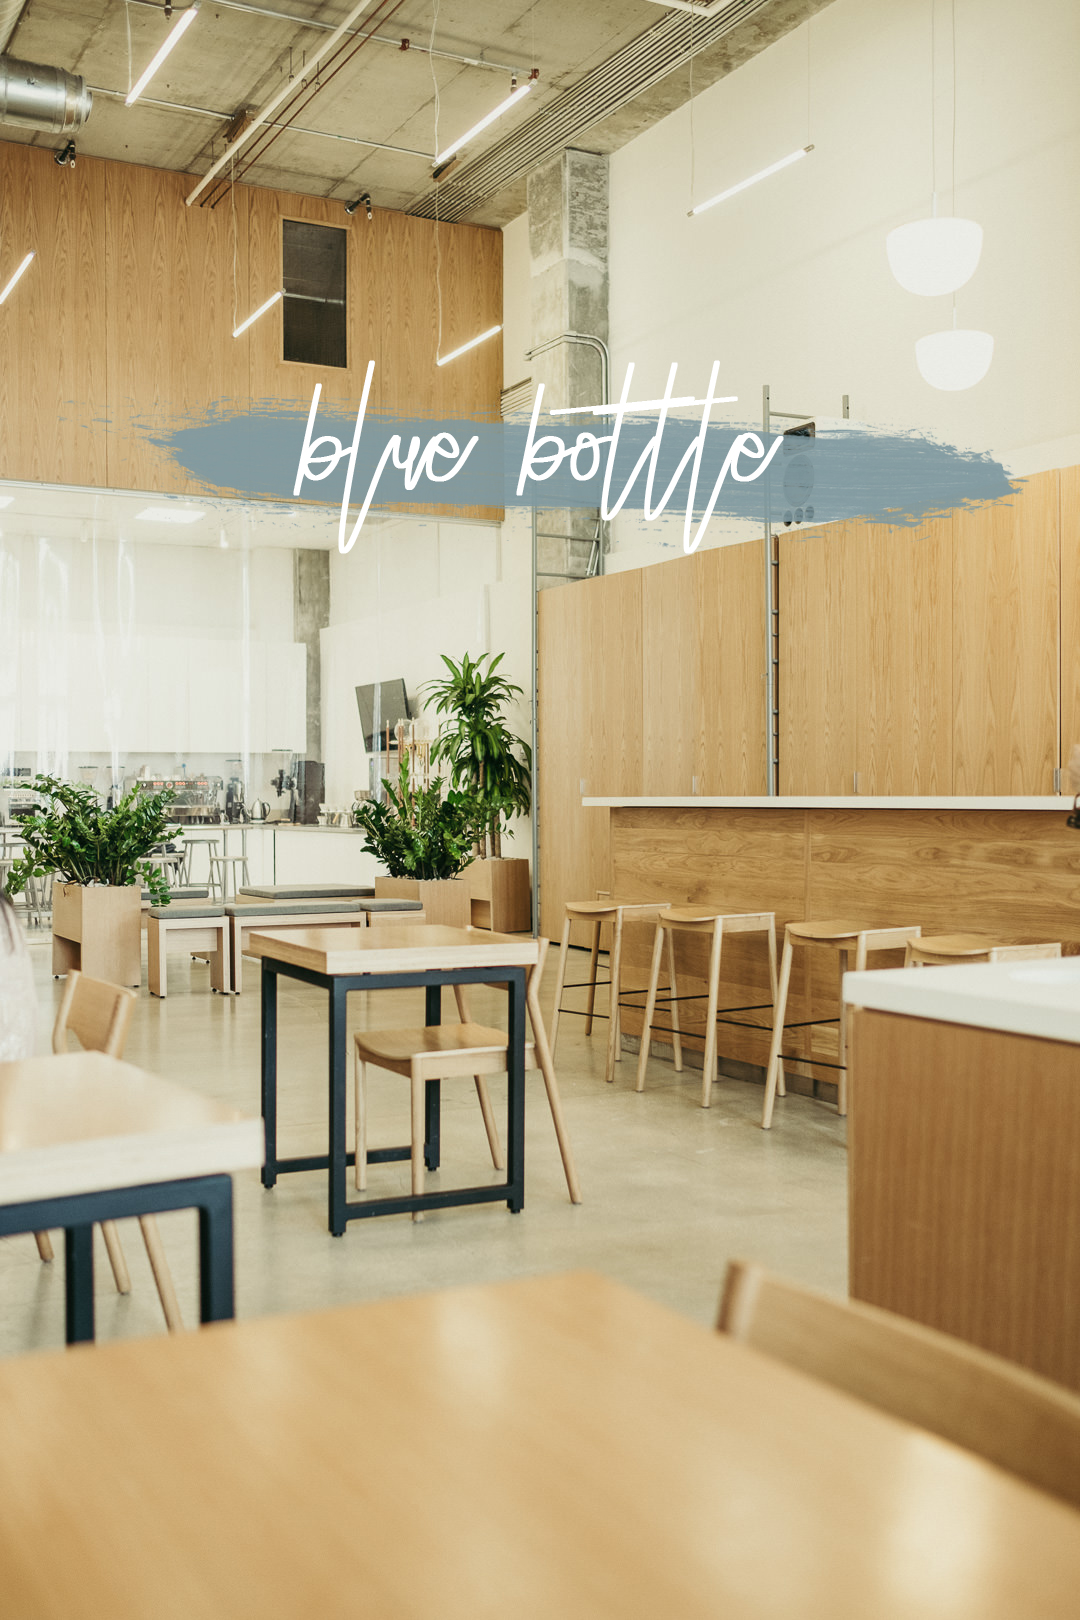 Blue Bottle - Miami Coffee Shops - Ali Happer Photo_6 copy.jpg